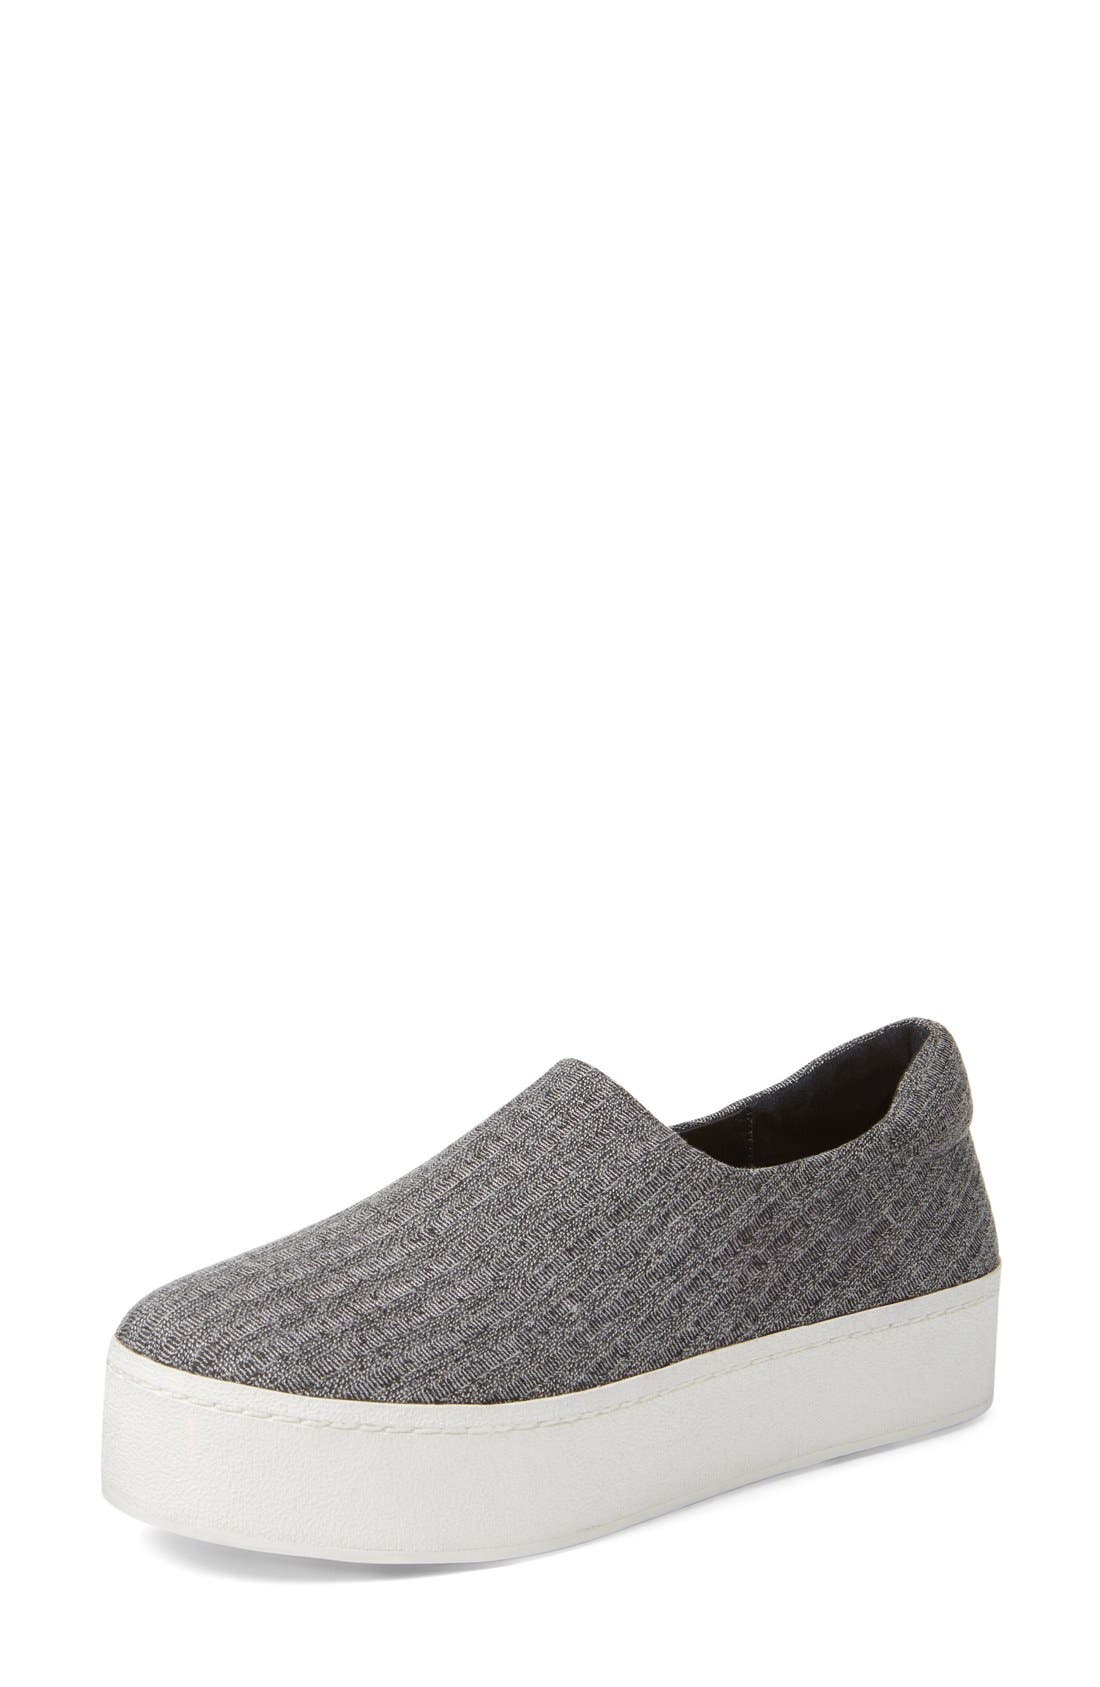 Alternate Image 1 Selected - Opening Ceremony Cici Ribbed Jersey Platform Sneaker (Women)